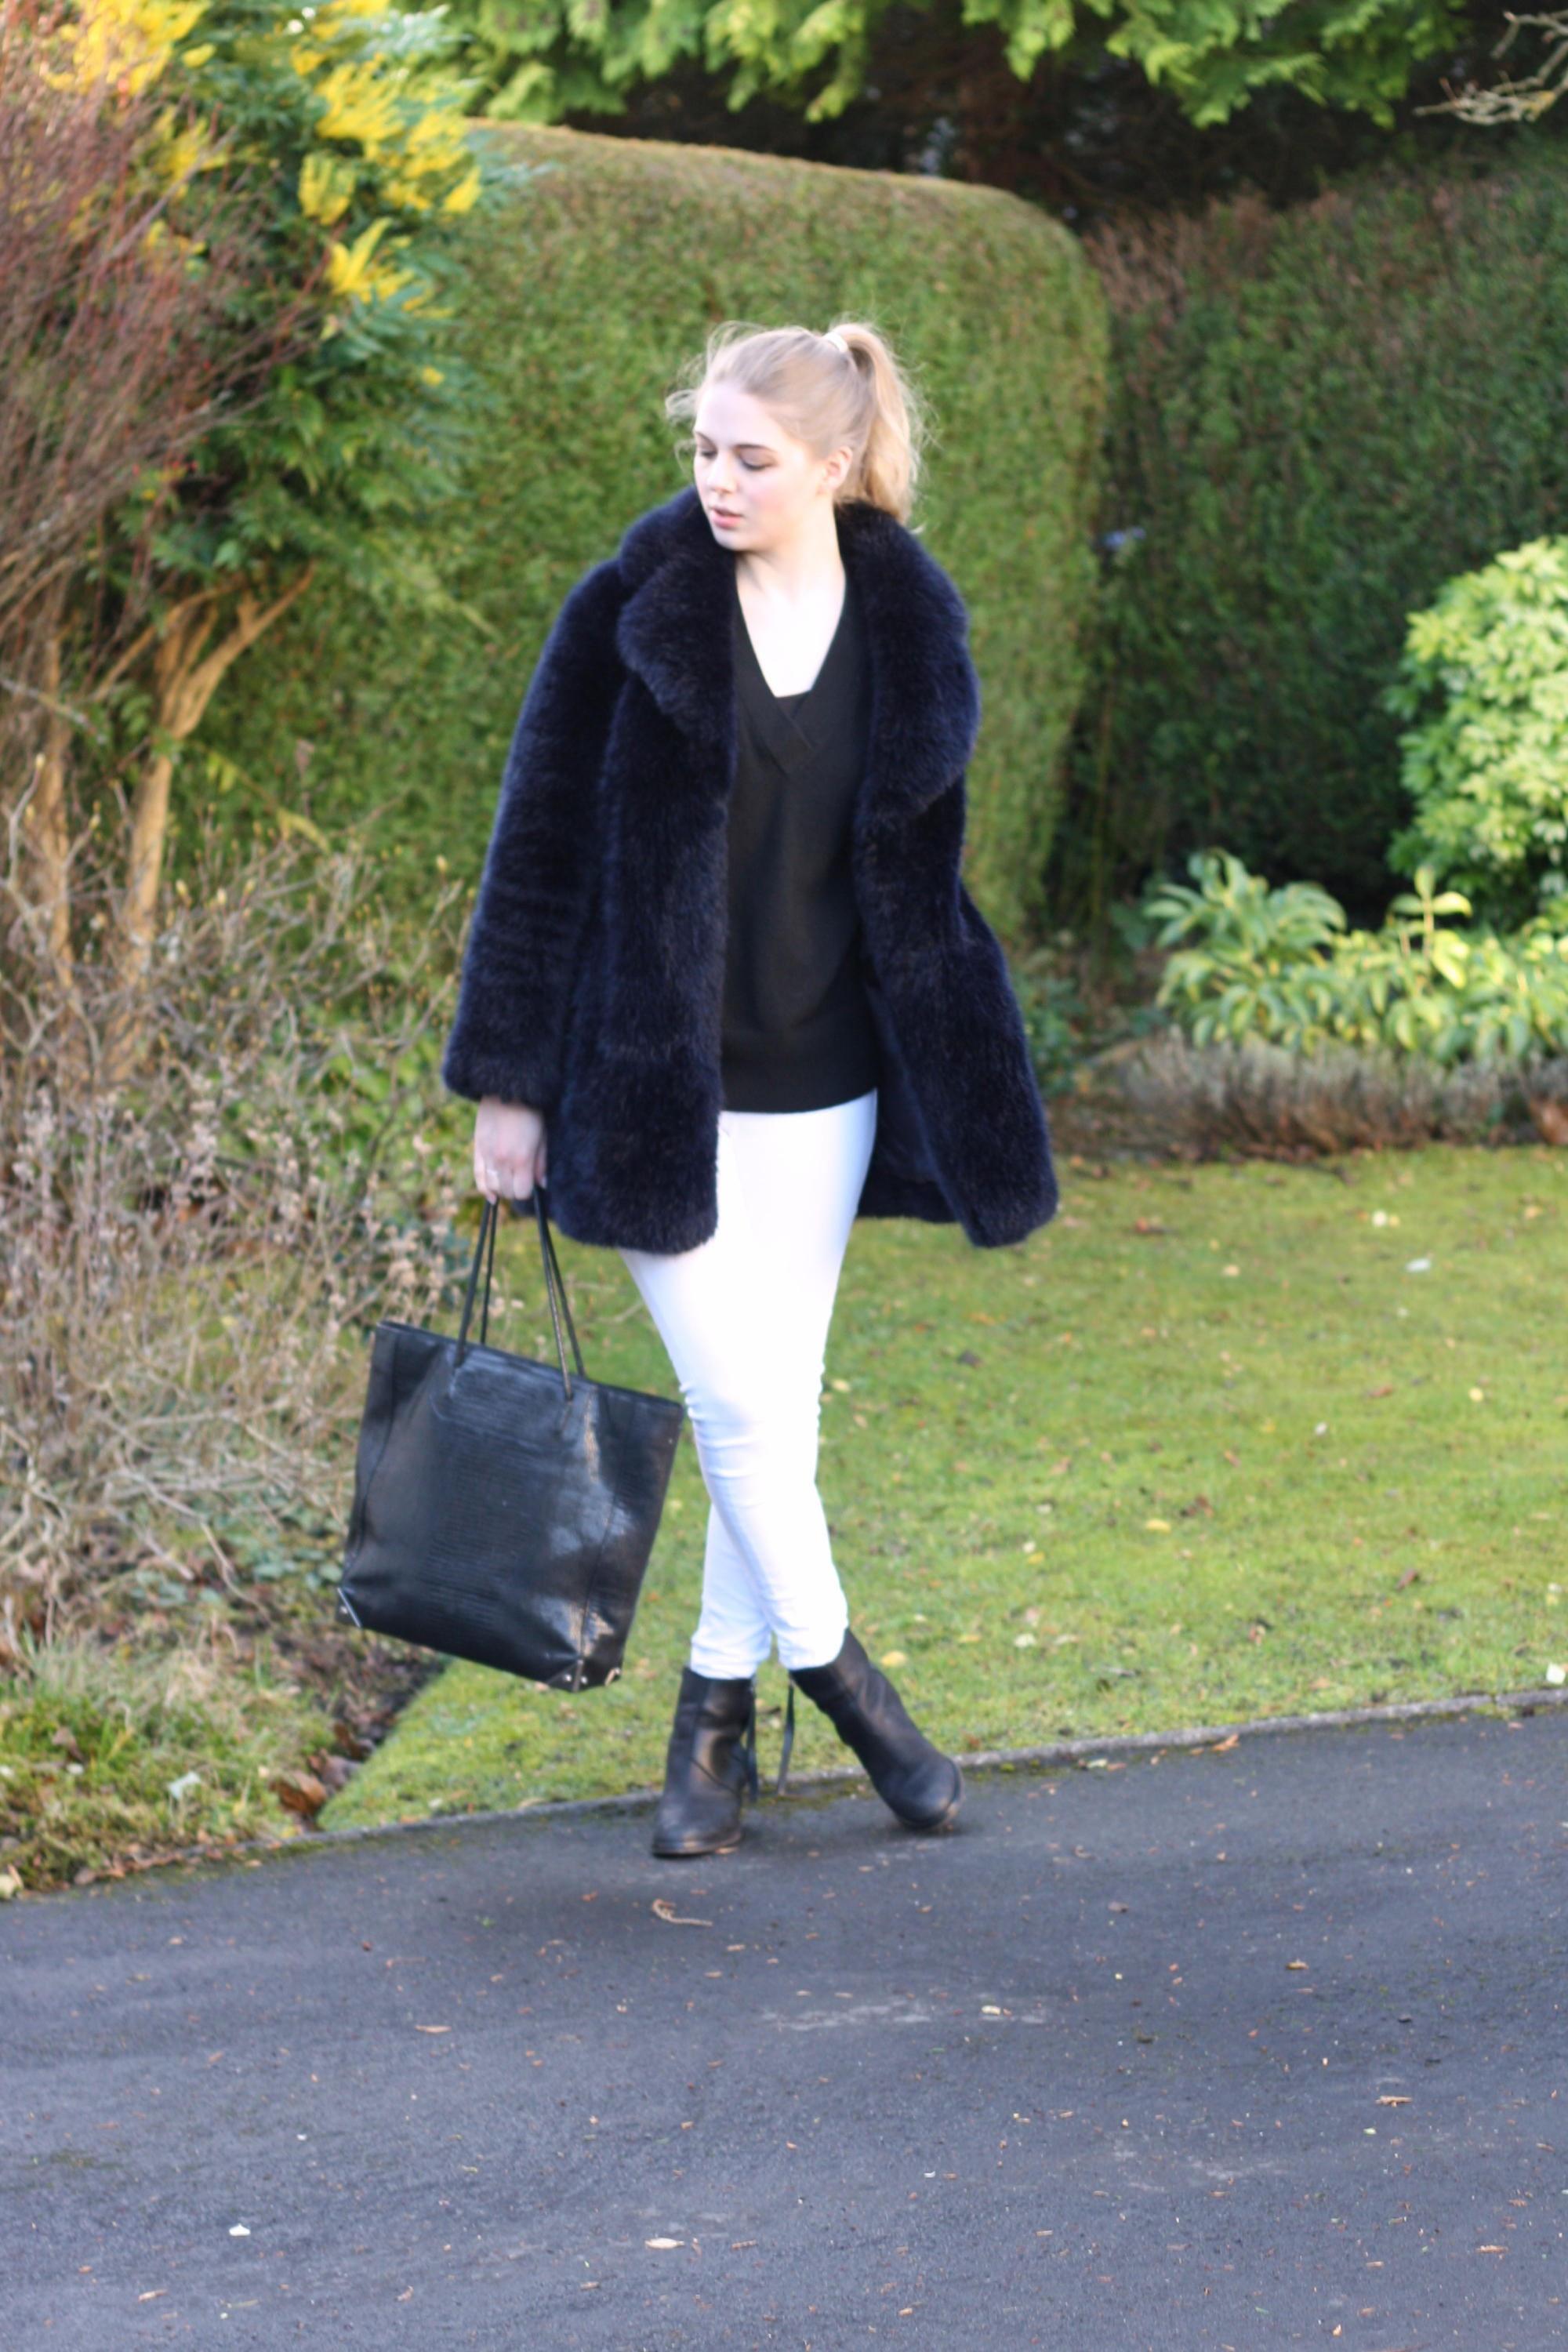 & Other Stories black cashmere jumper, white Topshop Jamie jeans and Alexander Wang Prisma bag